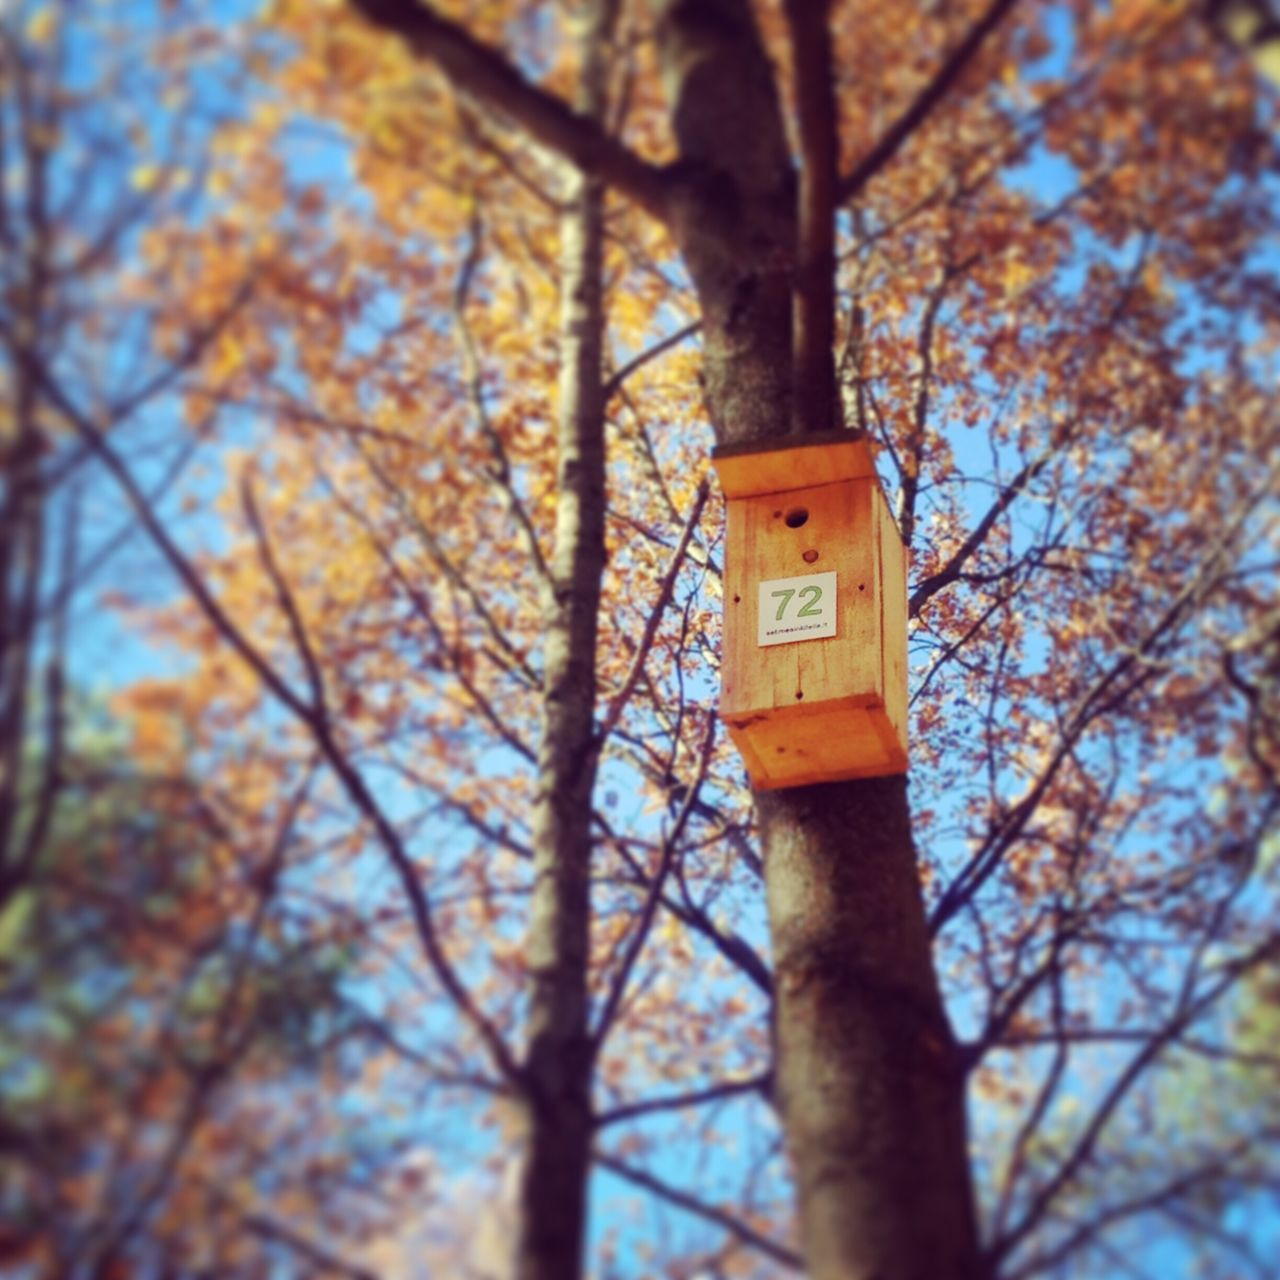 Tree Low Angle View Nature No People Tree Trunk Outdoors Autumn Branch Growth Day Beauty In Nature Sky Birdhouse Home Number Numbers Forest Park Vilnius Fall Waiting House Birdhouses Fall Beauty Fall Colors